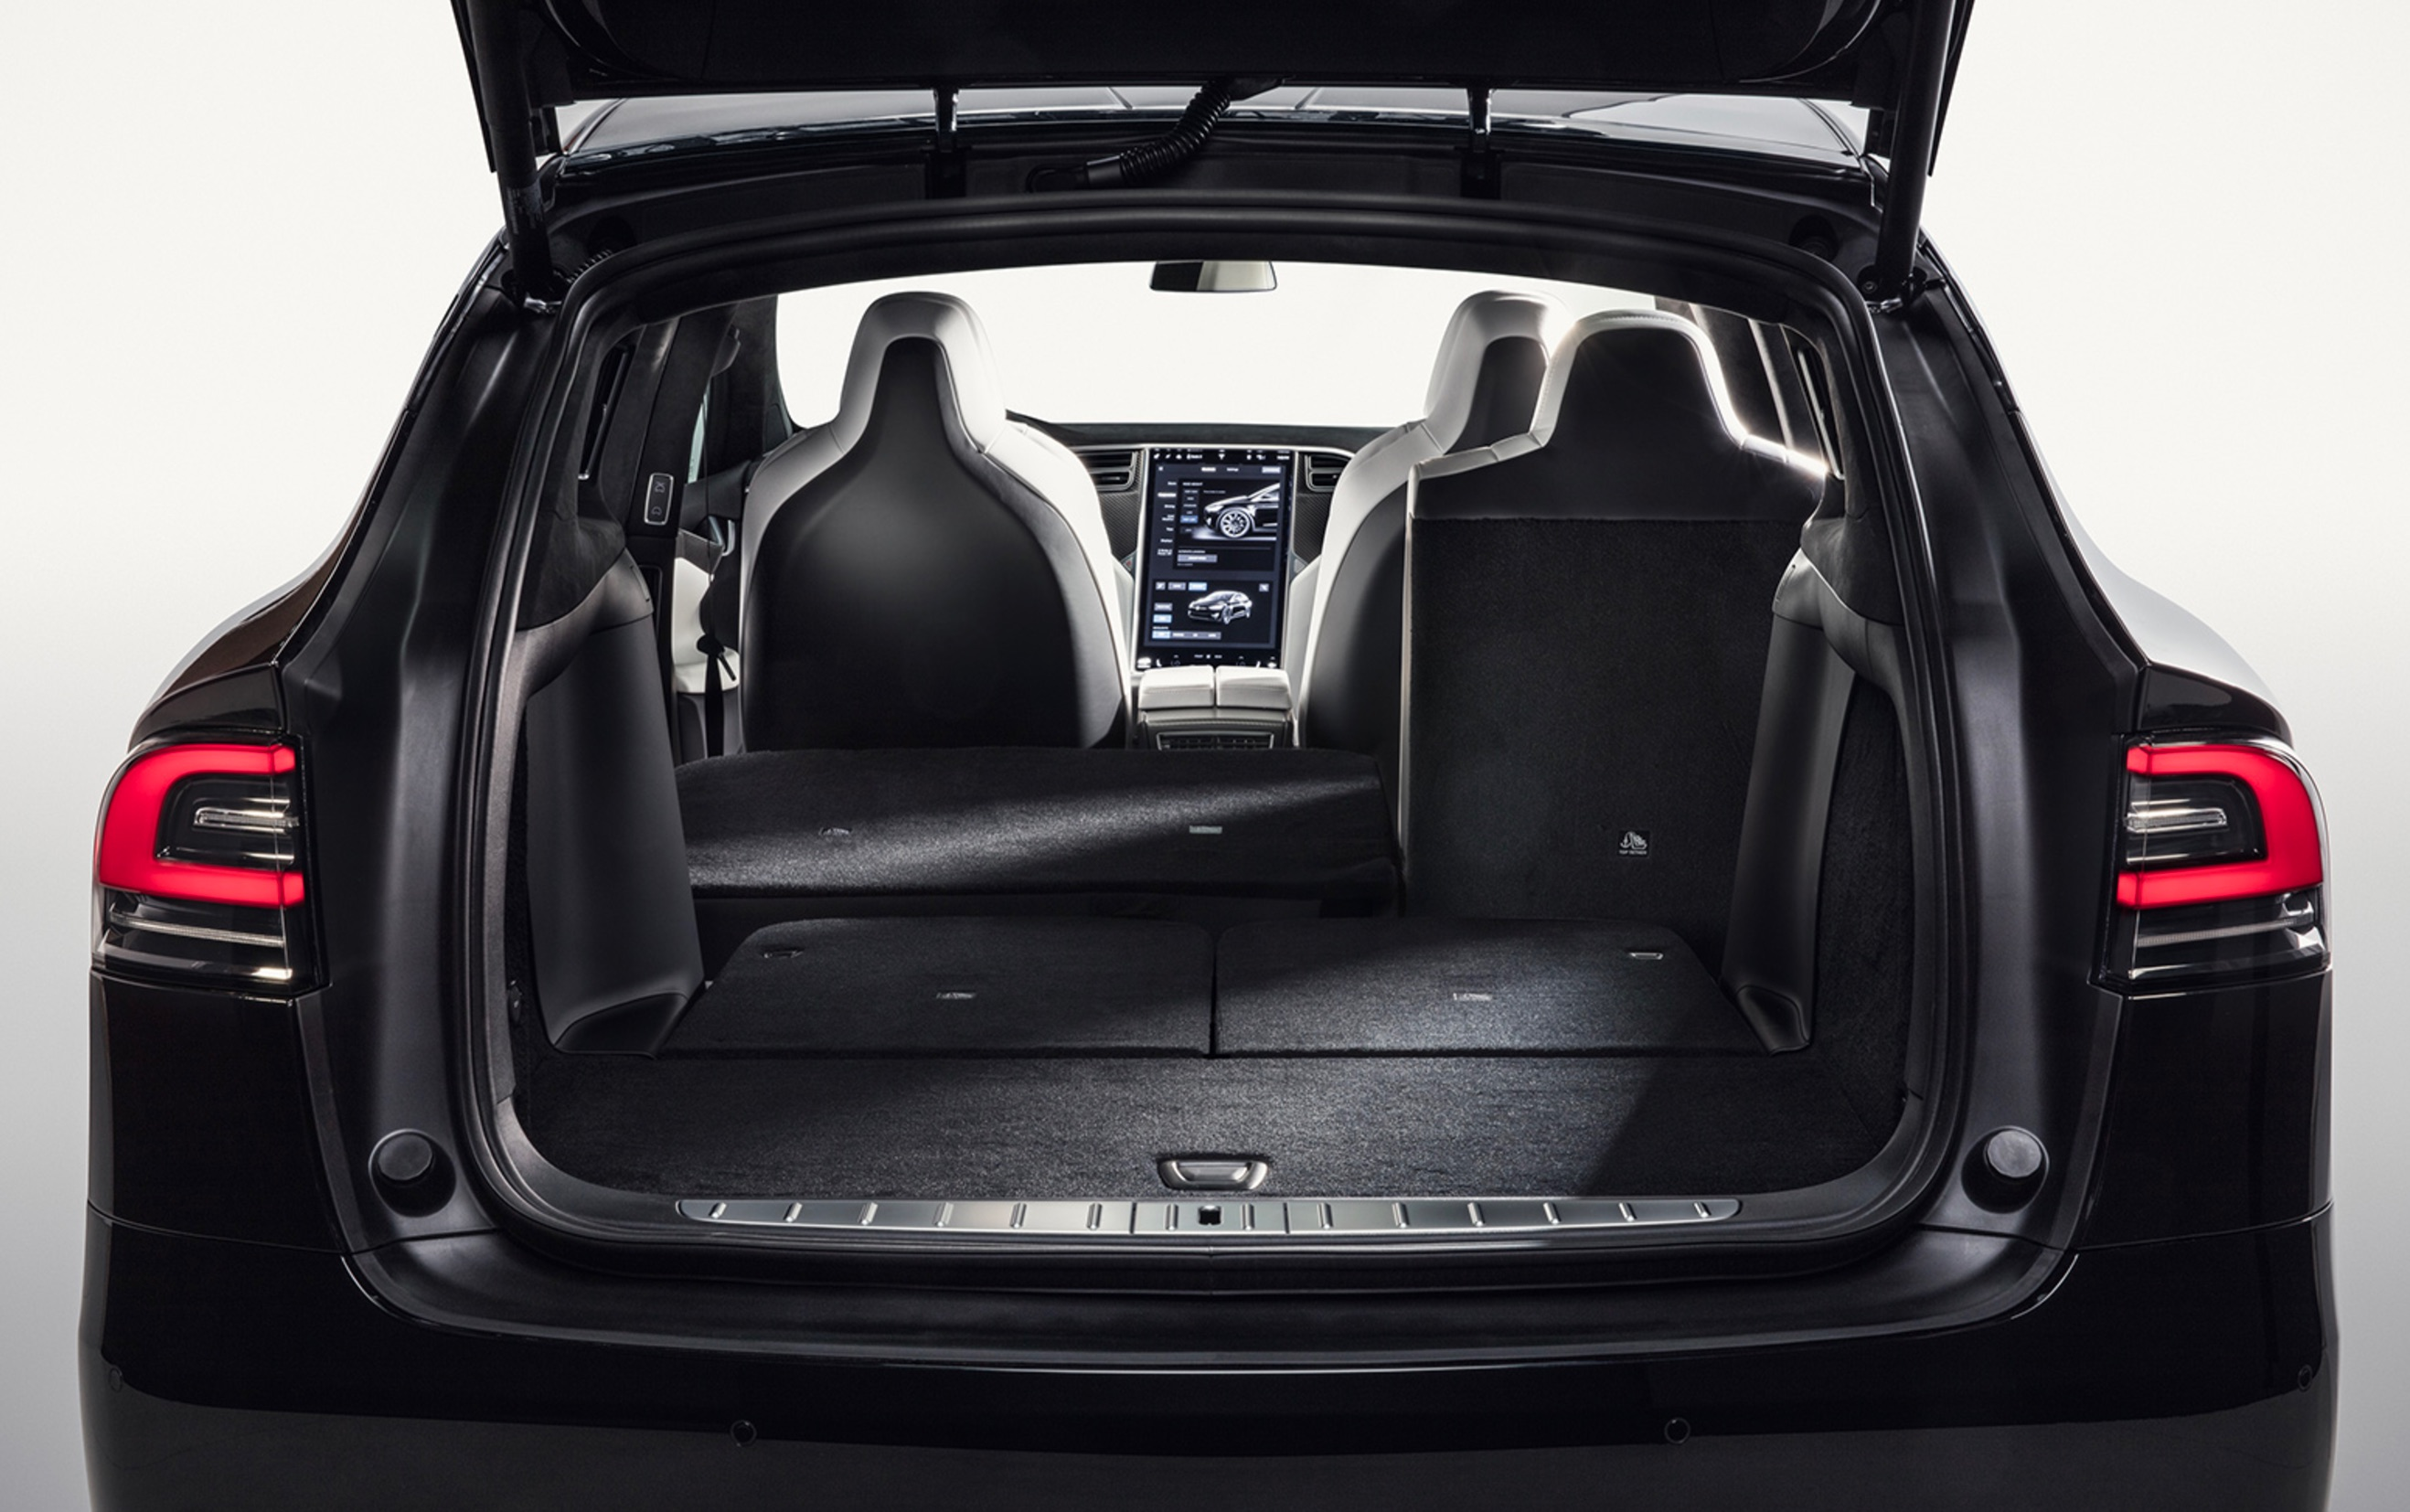 Tesla model x in 7 seat configuration finally gets fold for Model flat pictures